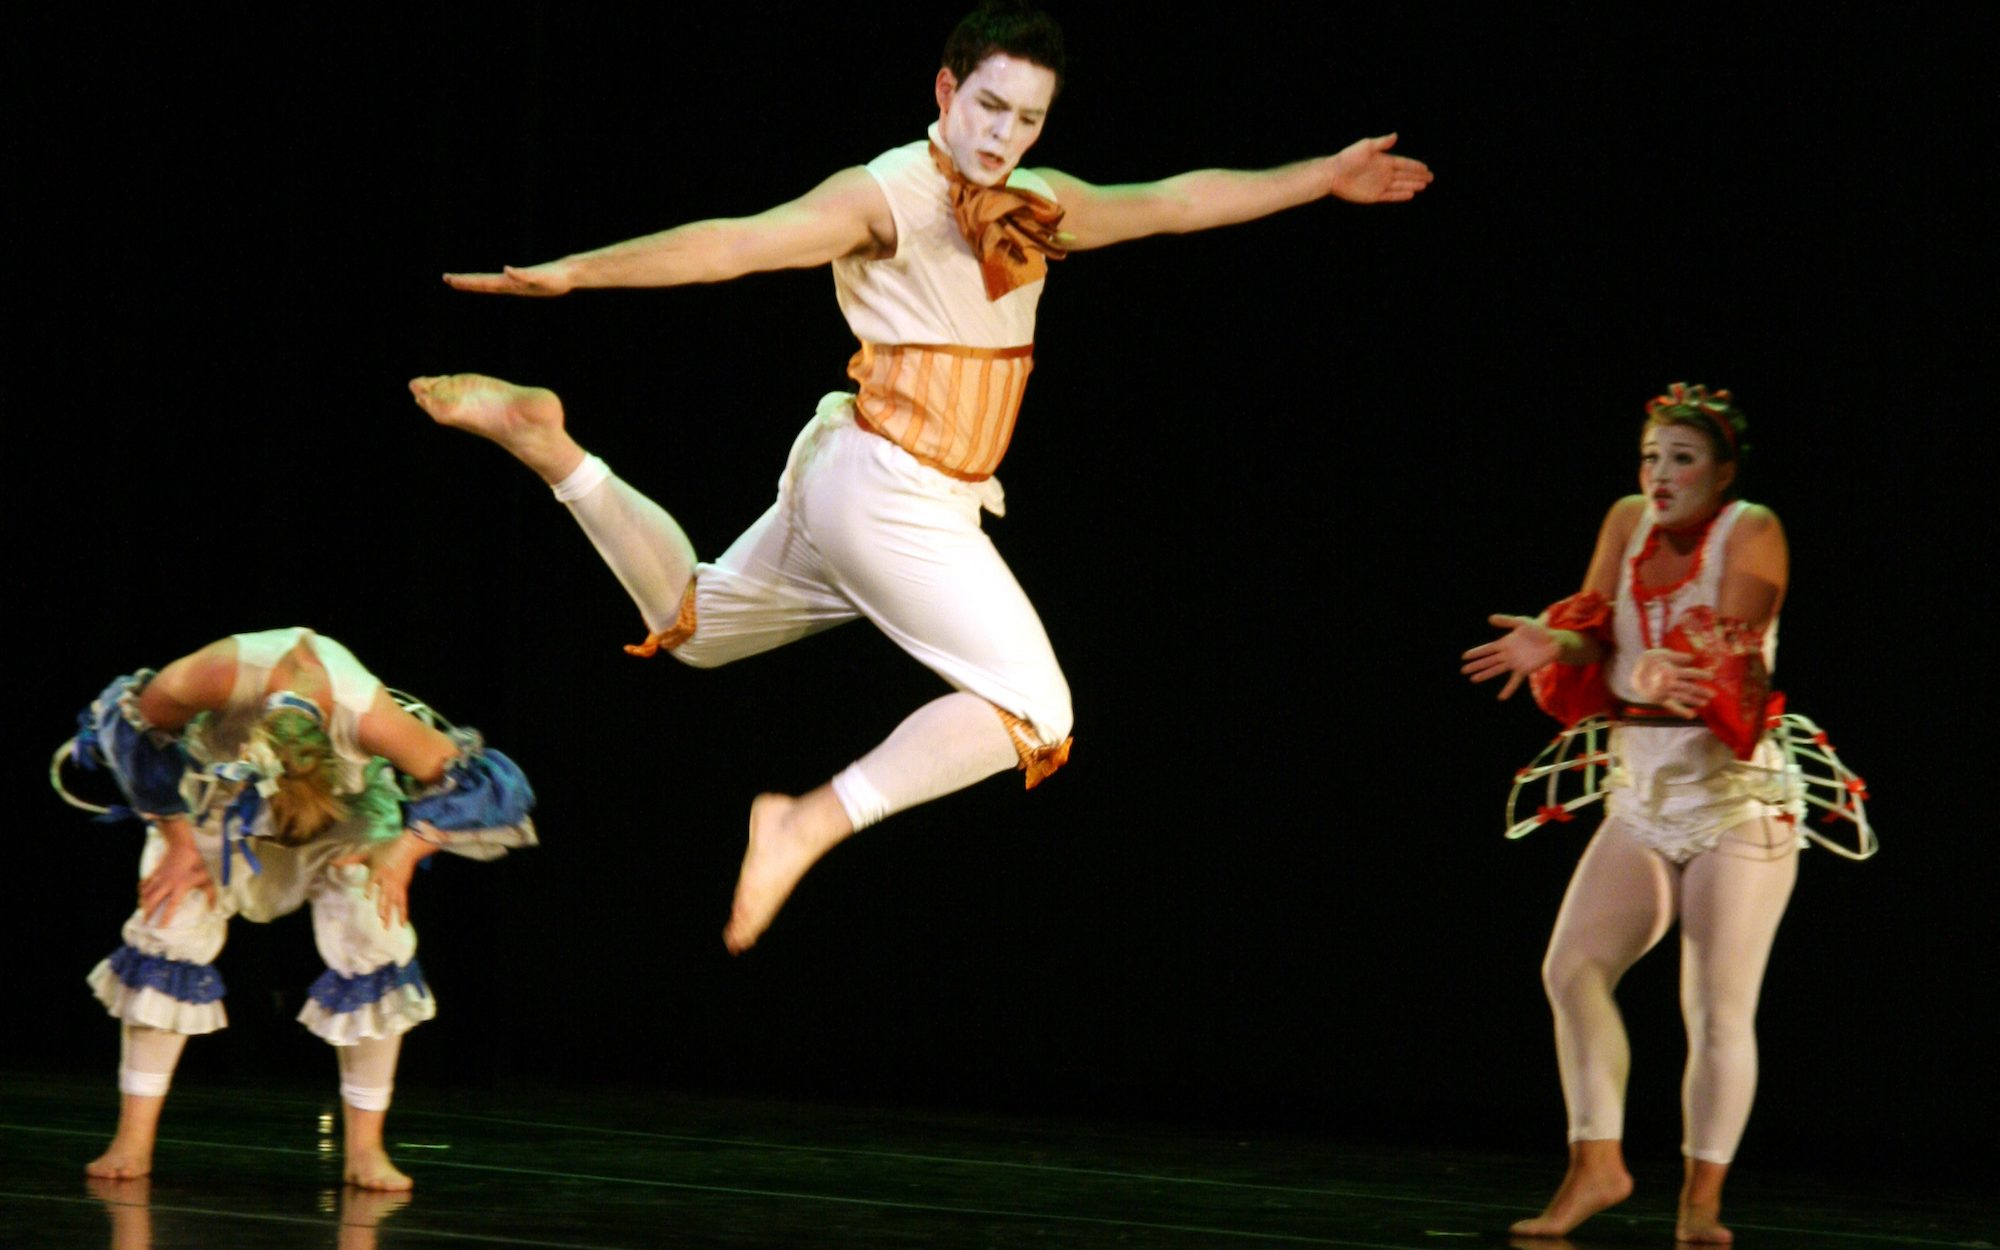 three people in costume on stage dancing, on in midair